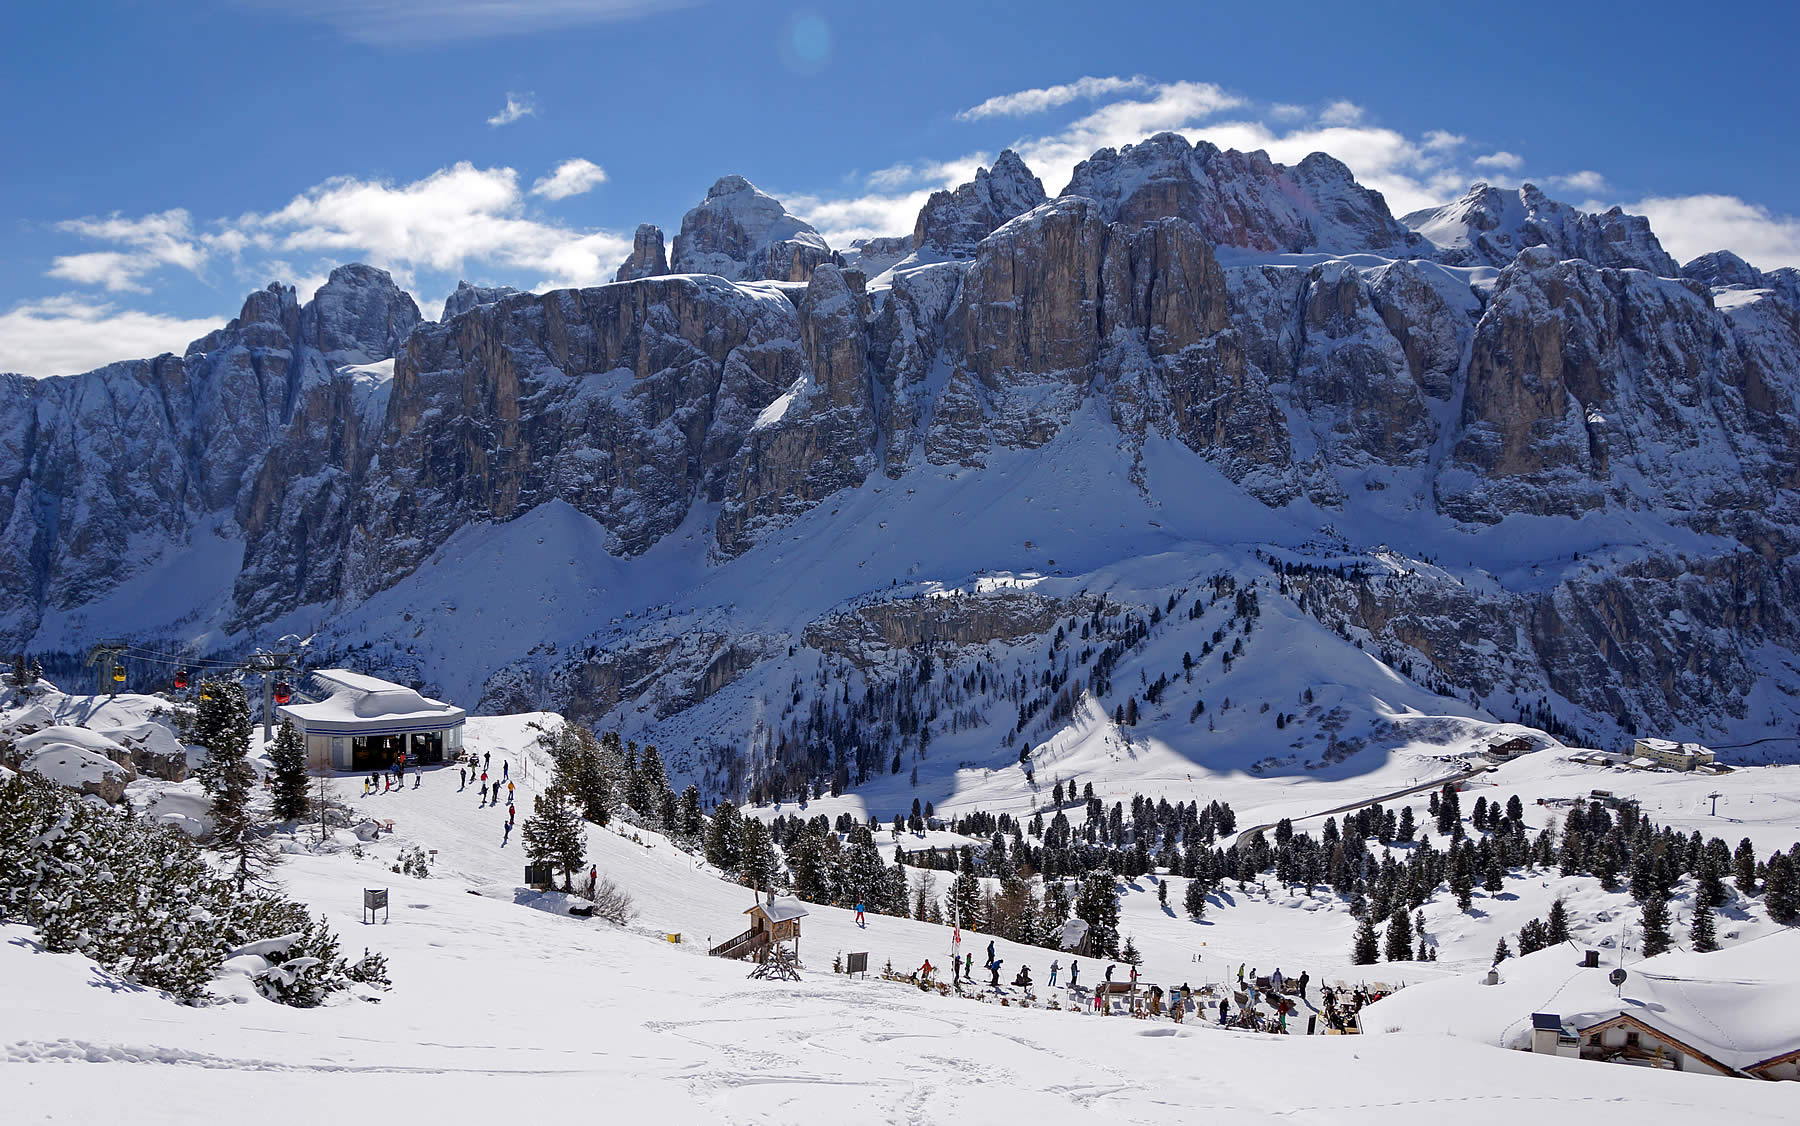 Dolomiti Superski ski slopes on the Passo Gardena